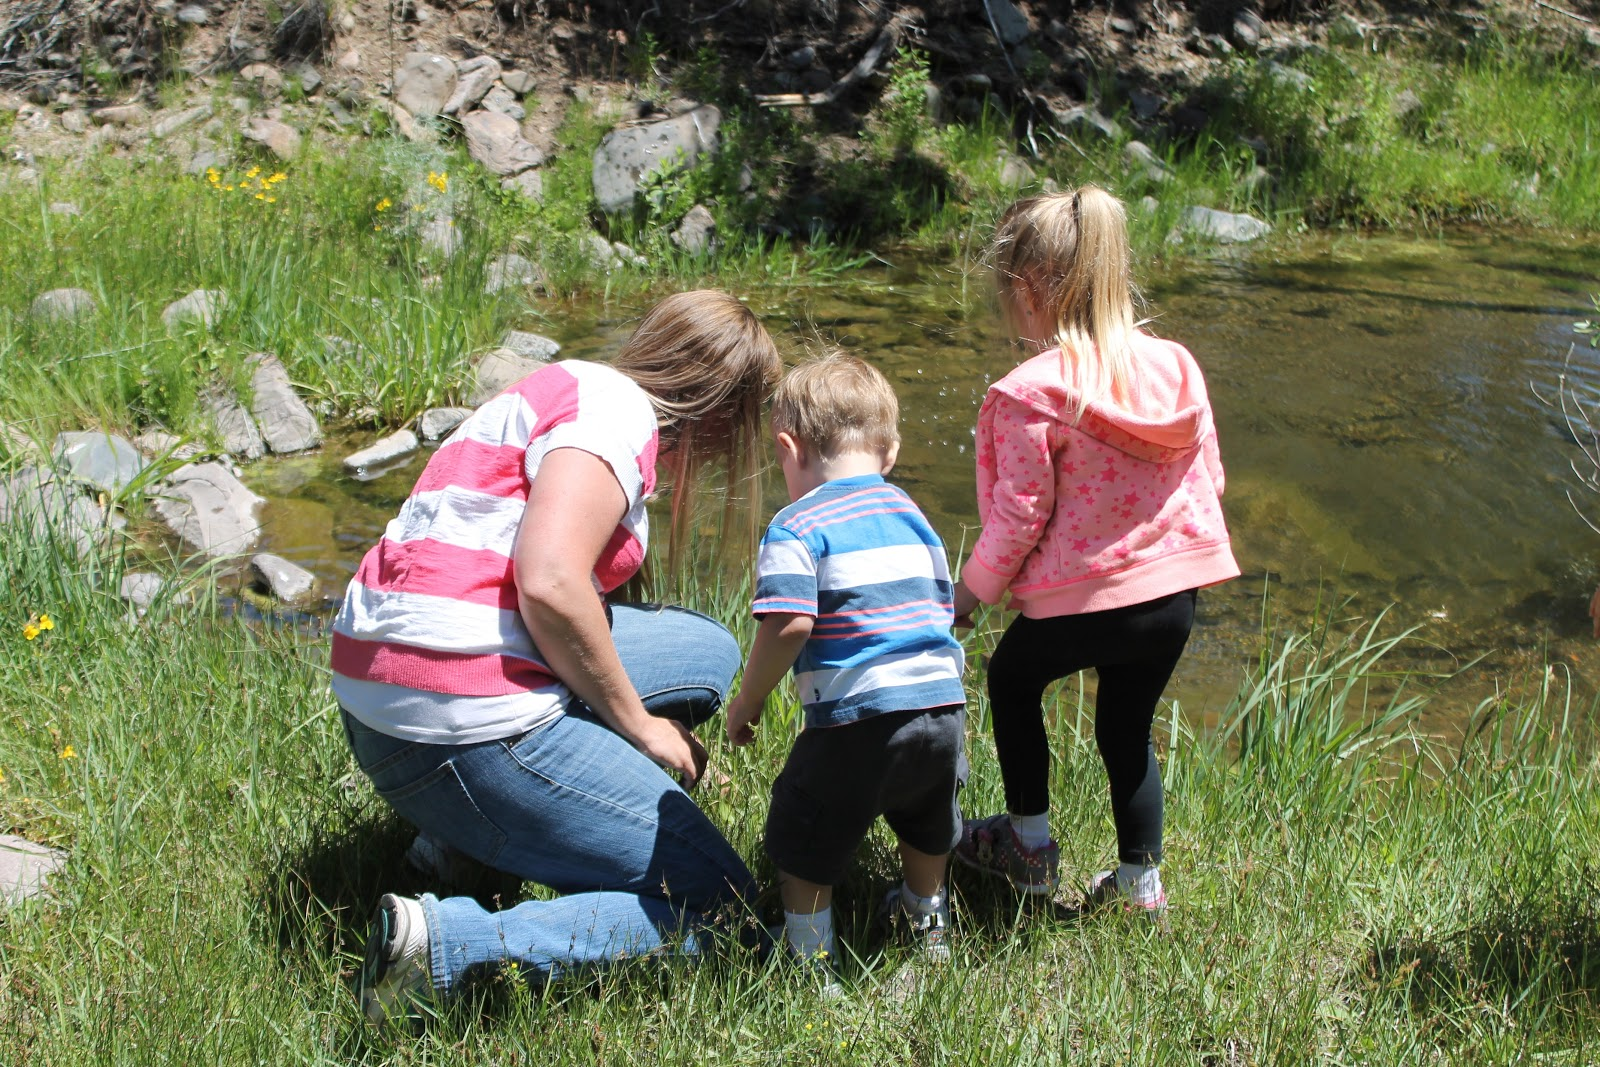 We love to explore new creeks. It's one way we work as a family to live naturally